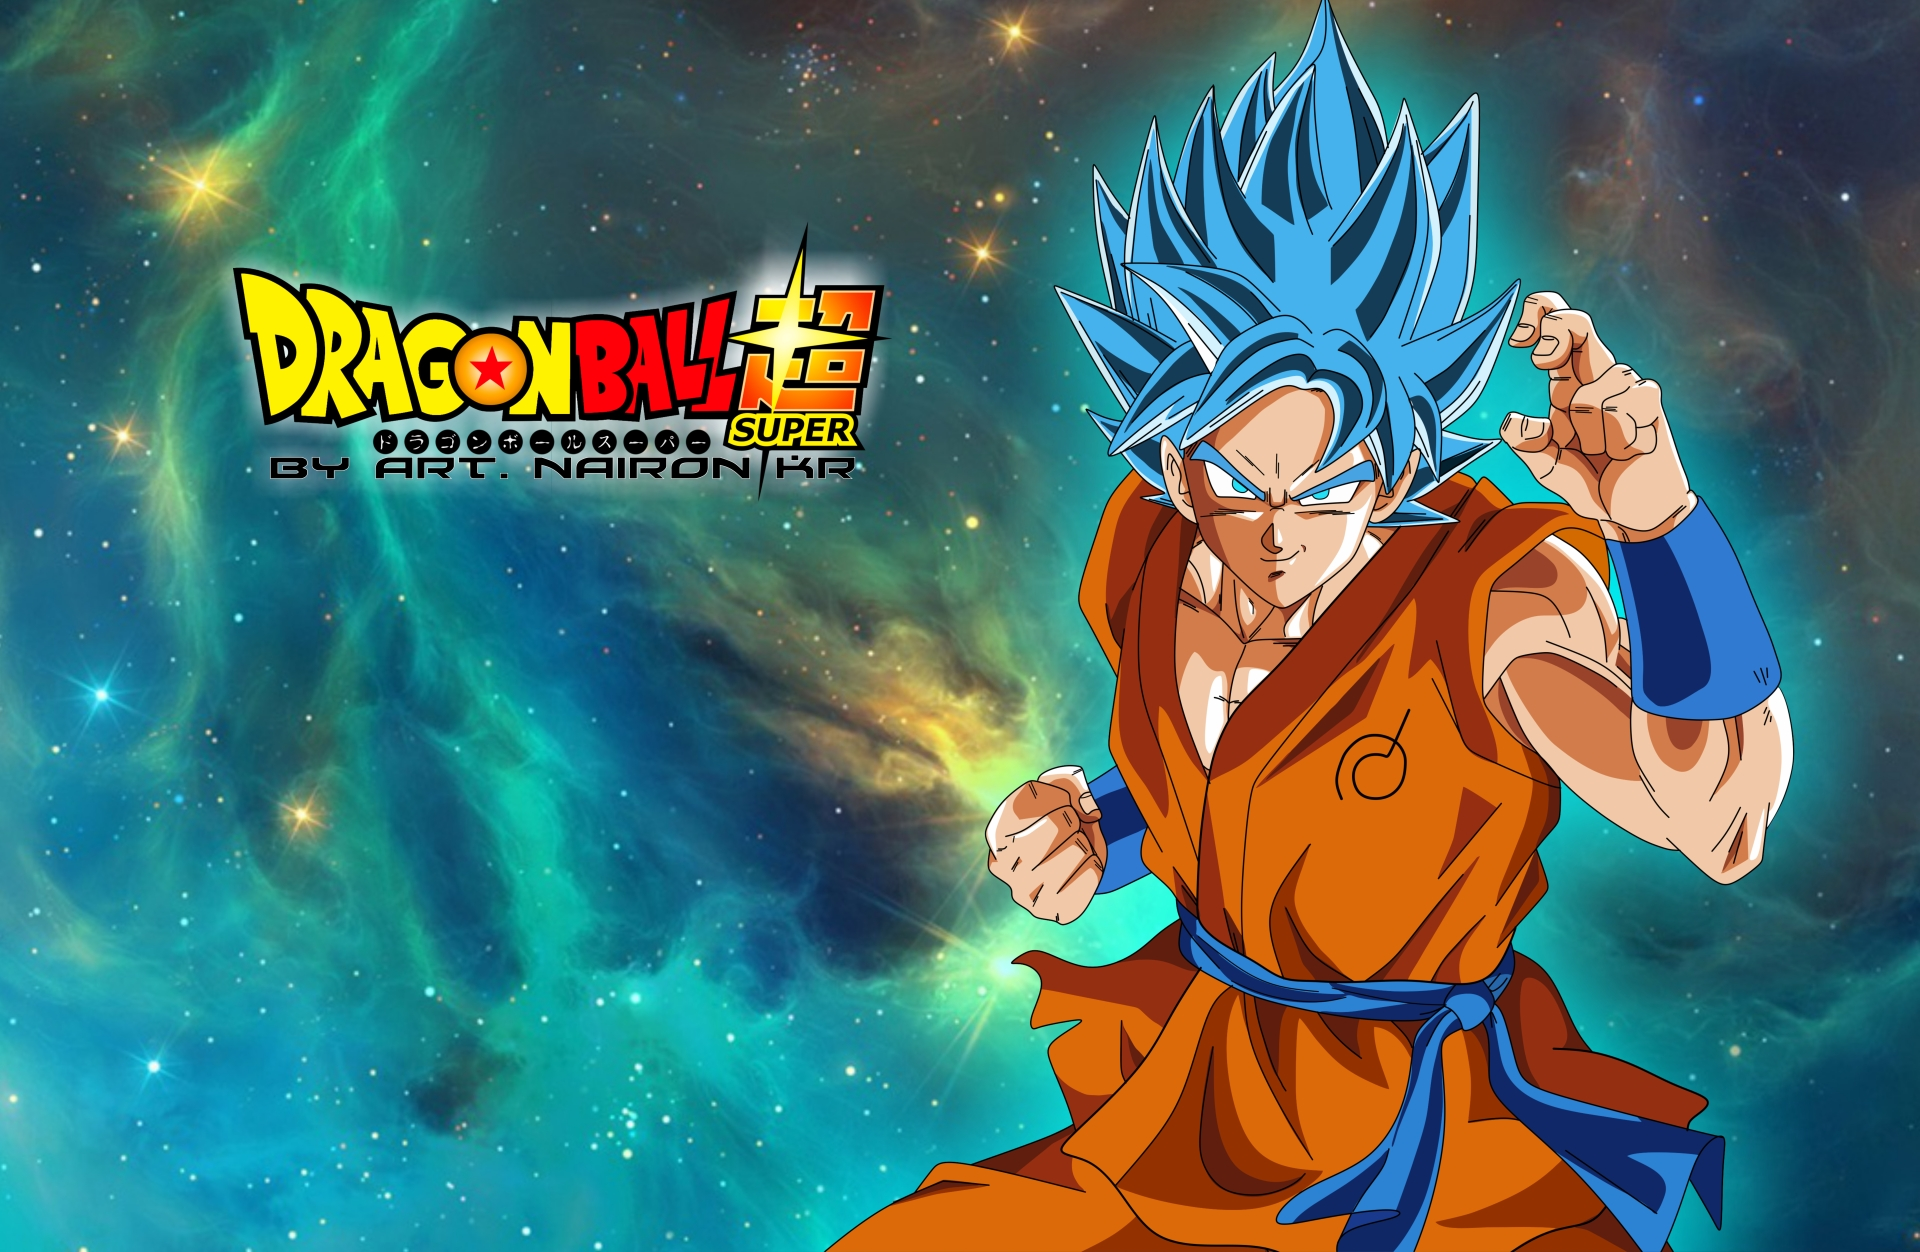 dragon ball super wallpapers wide ~ sdeerwallpaper | dbs | pinterest